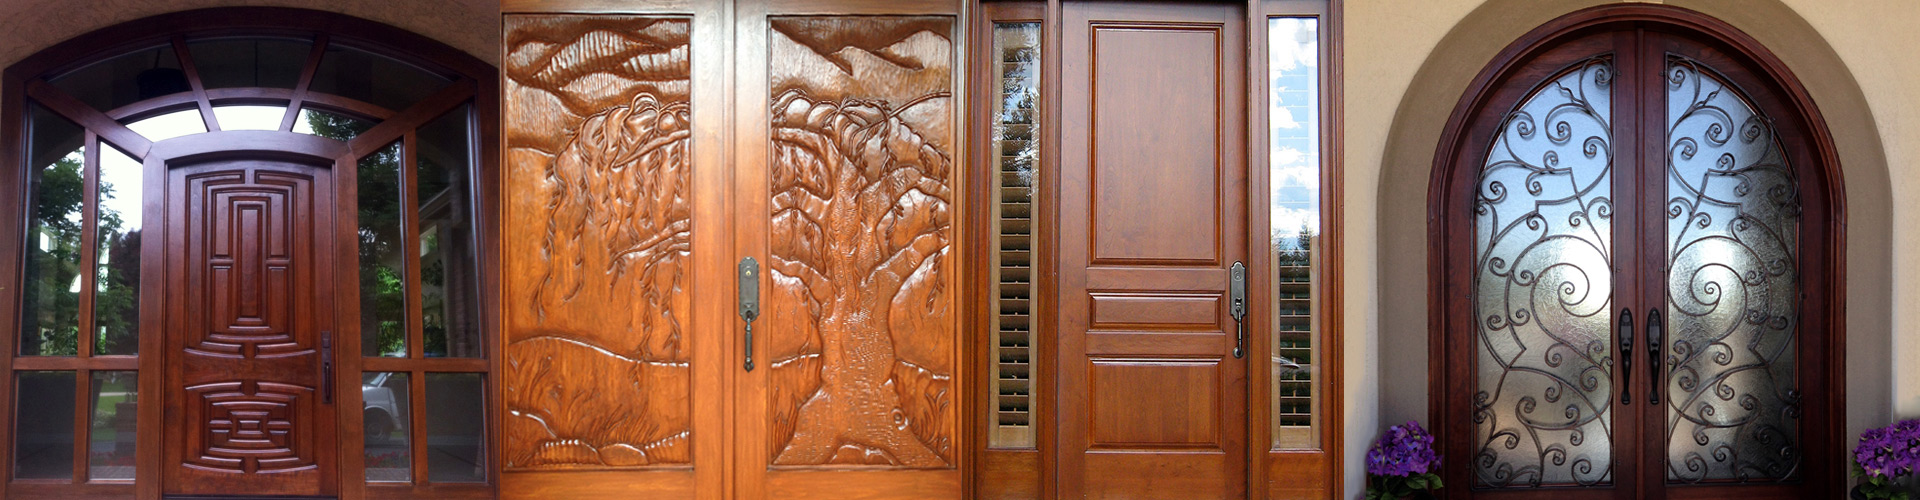 Wood Door Repair | Wood Door Refinishing | Wood Door Restoration   Summit Wood  Door Refinishing